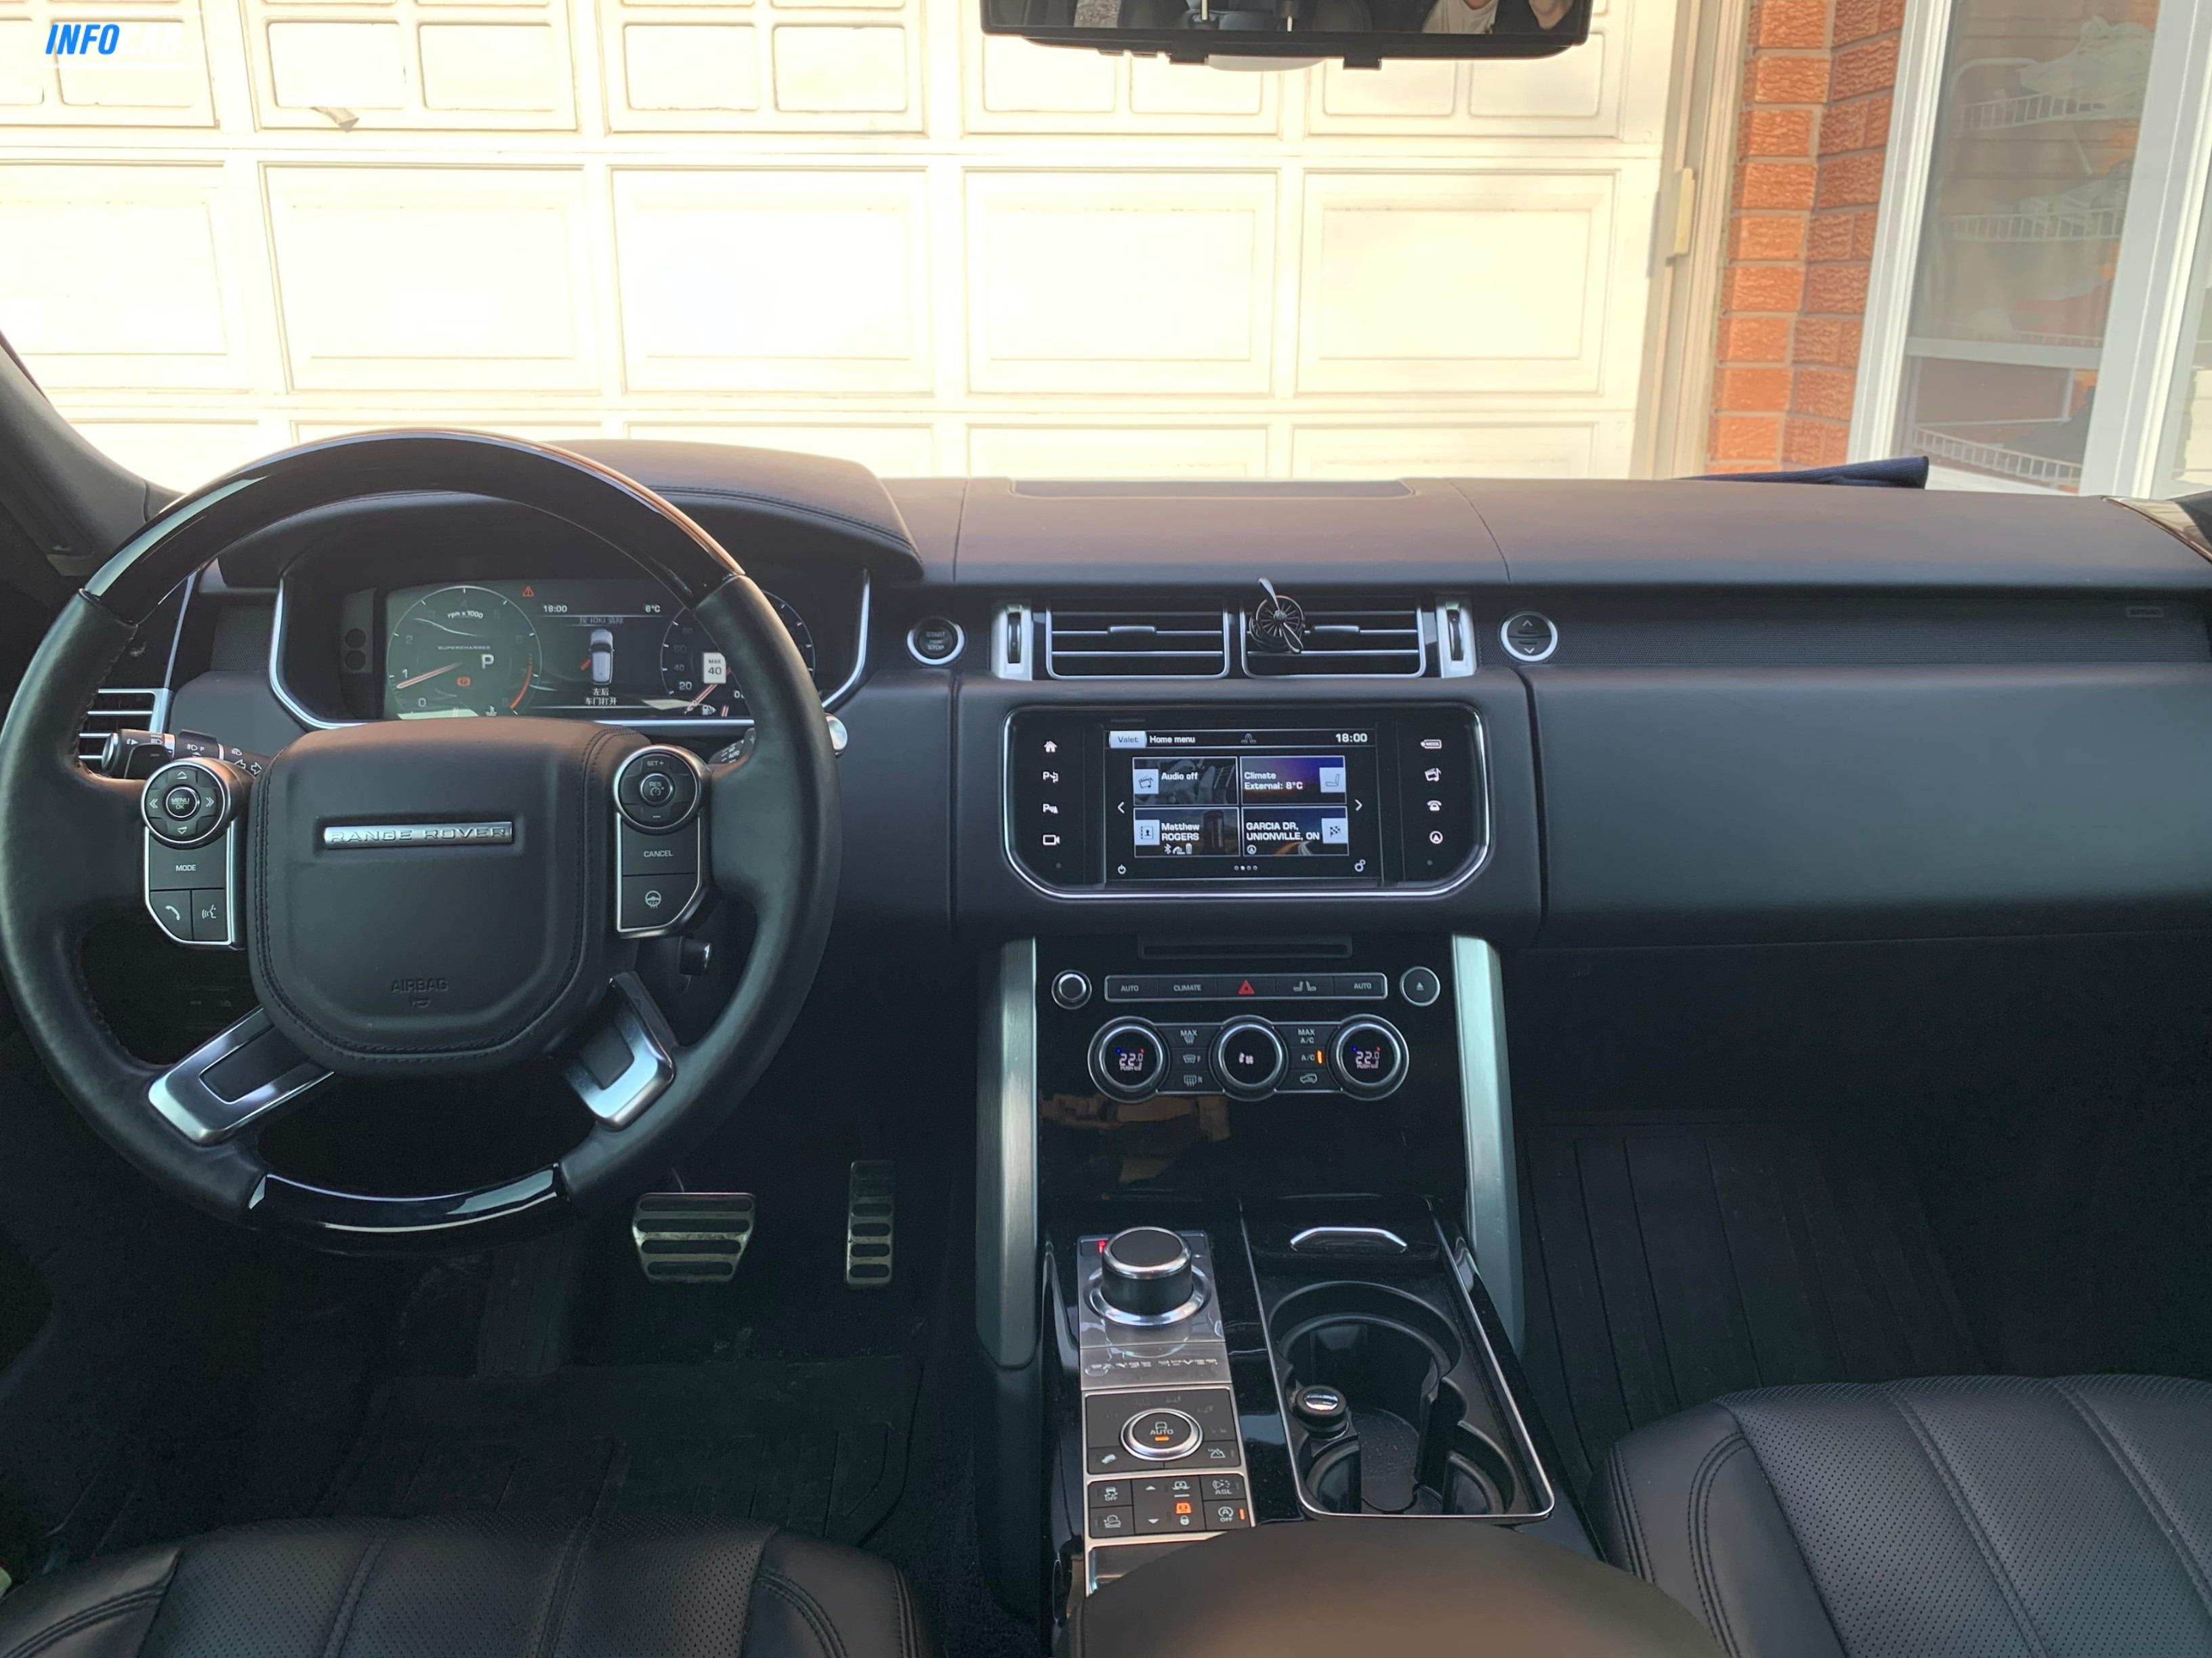 2016 Land Rover Range Rover supercharge - INFOCAR - Toronto's Most Comprehensive New and Used Auto Trading Platform